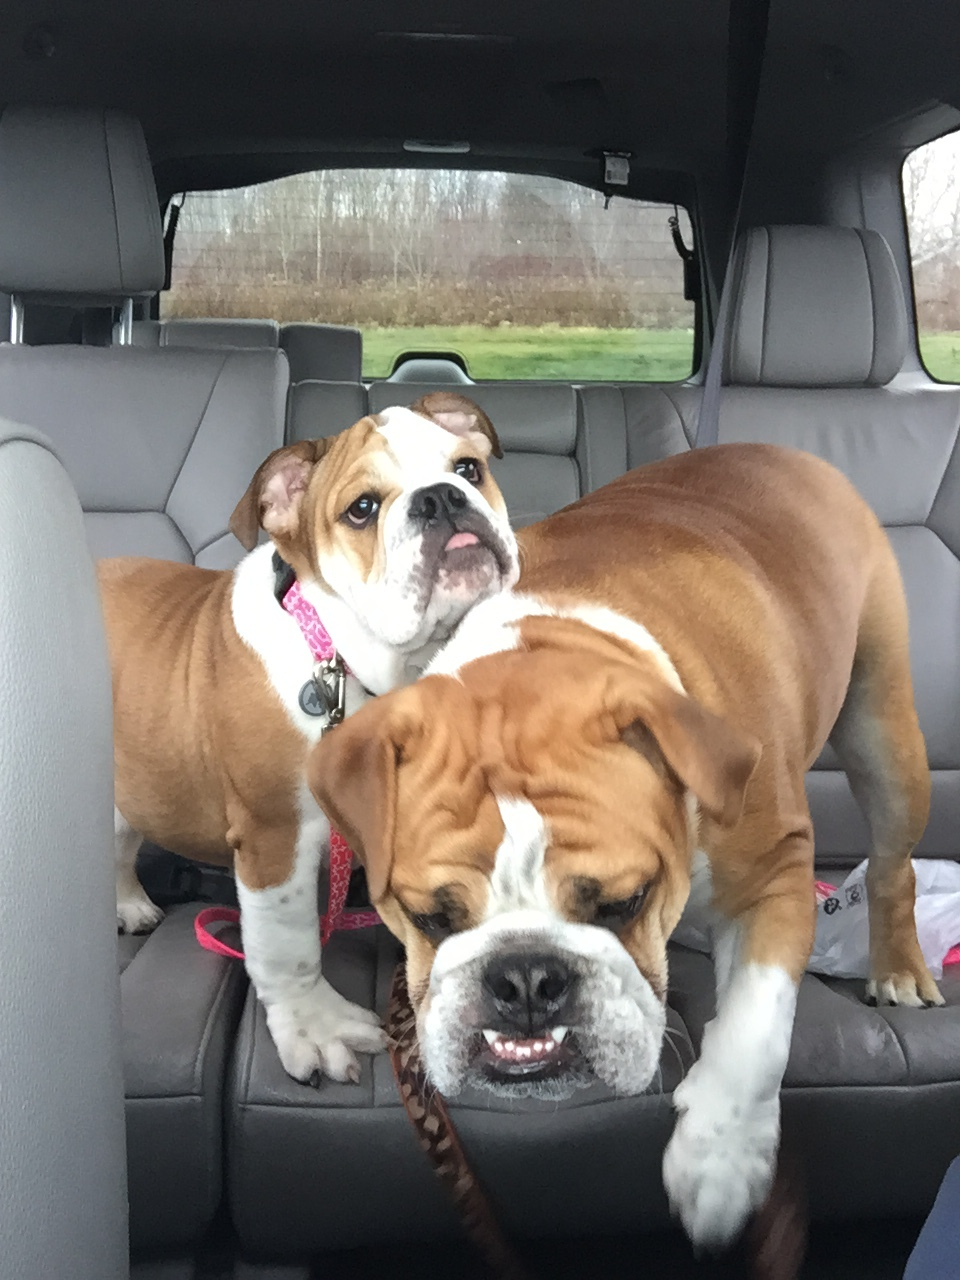 Gracie (pink collar) and Boss Dog (foreground). The loves of our lives. They keep up busy and laughing, that's for sure!